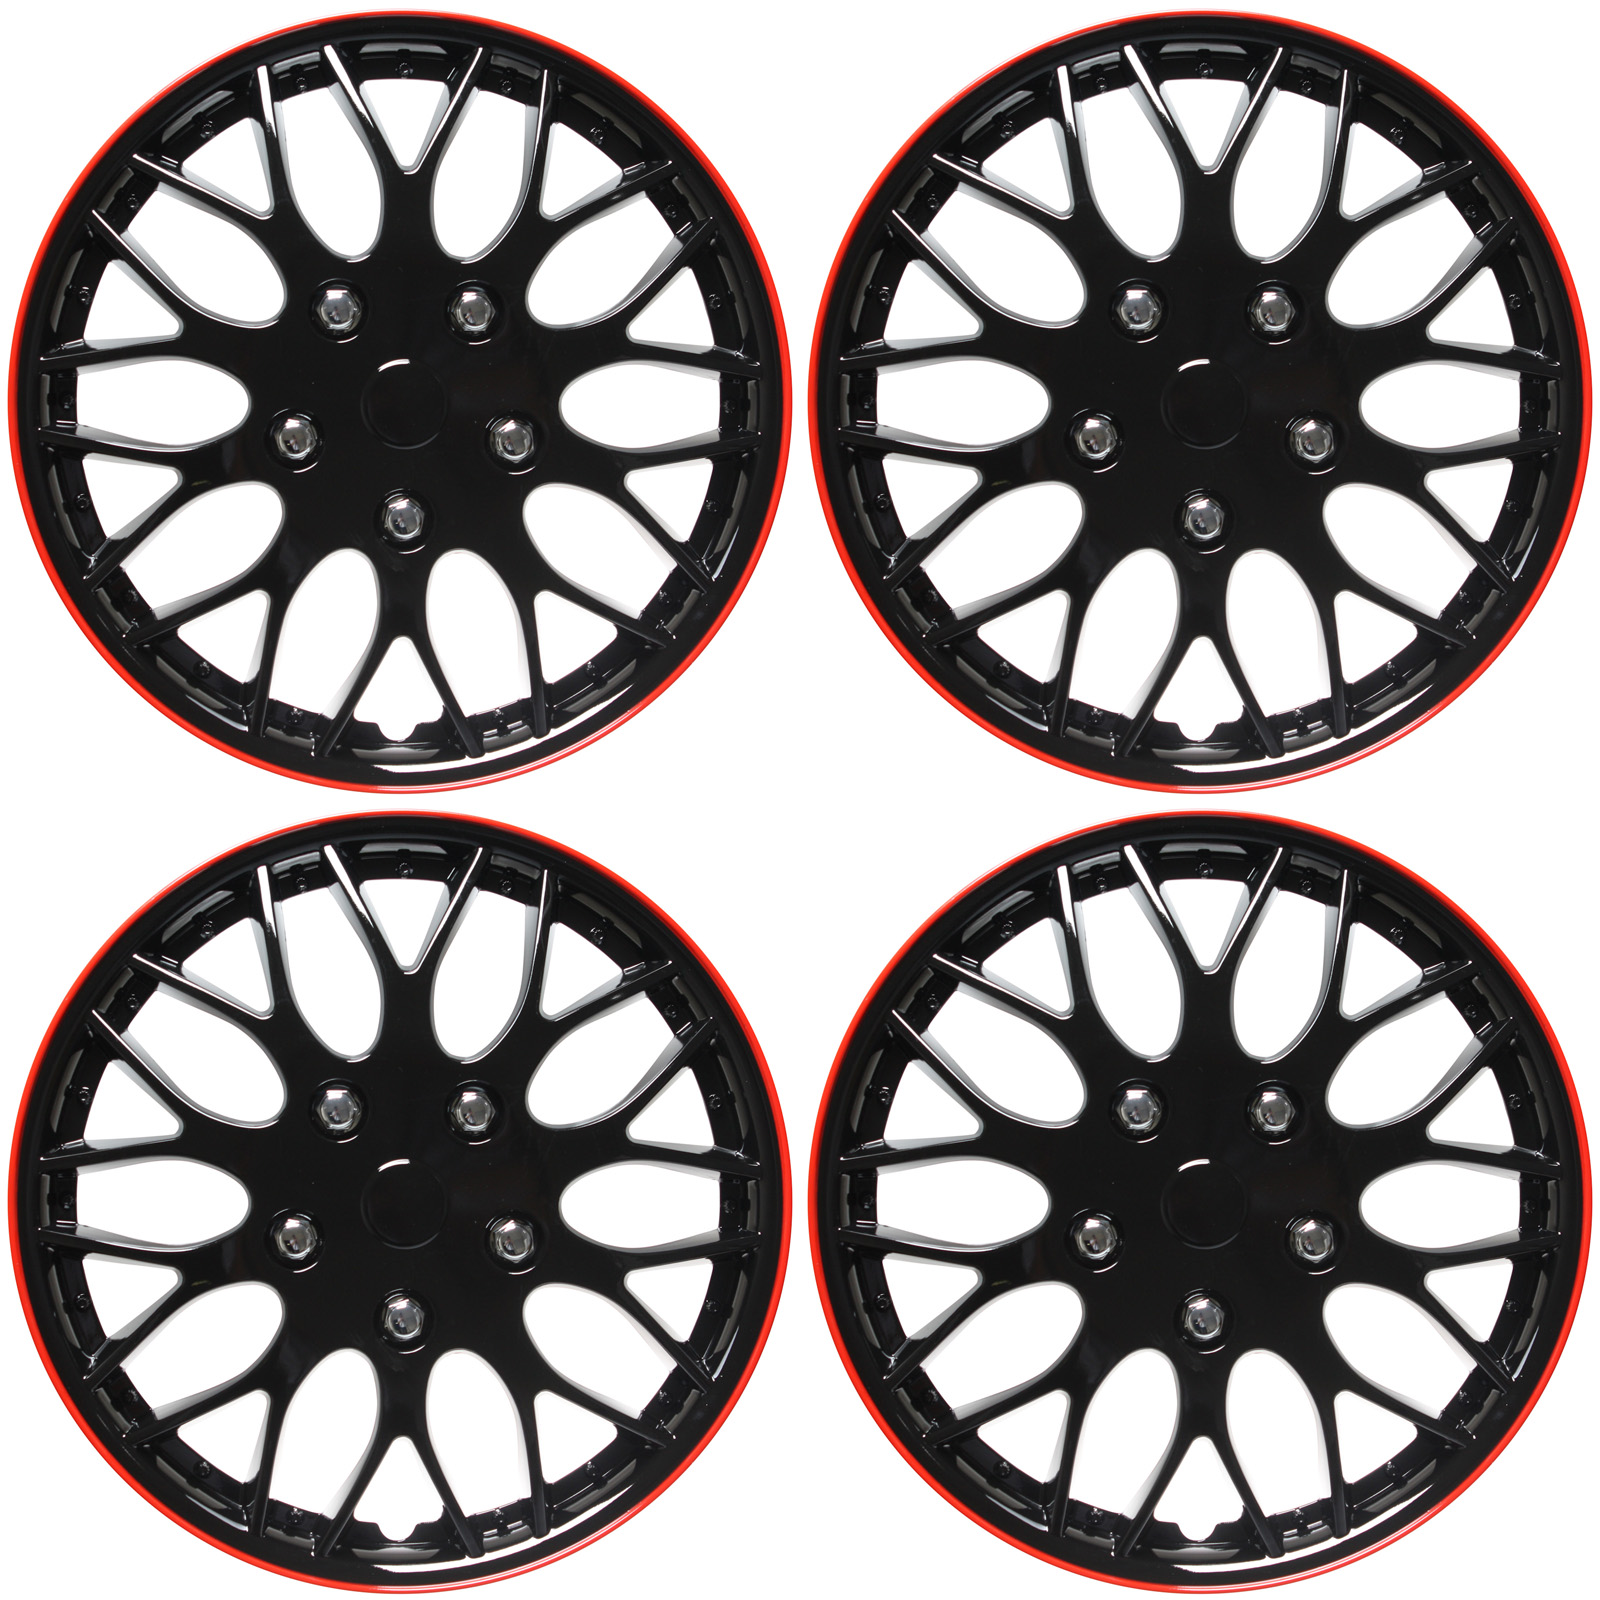 """Cover Trend (Set of 4), Aftermarket, 16"""" Shiny Black W/ Red Trim Hub Caps Wheel Covers"""